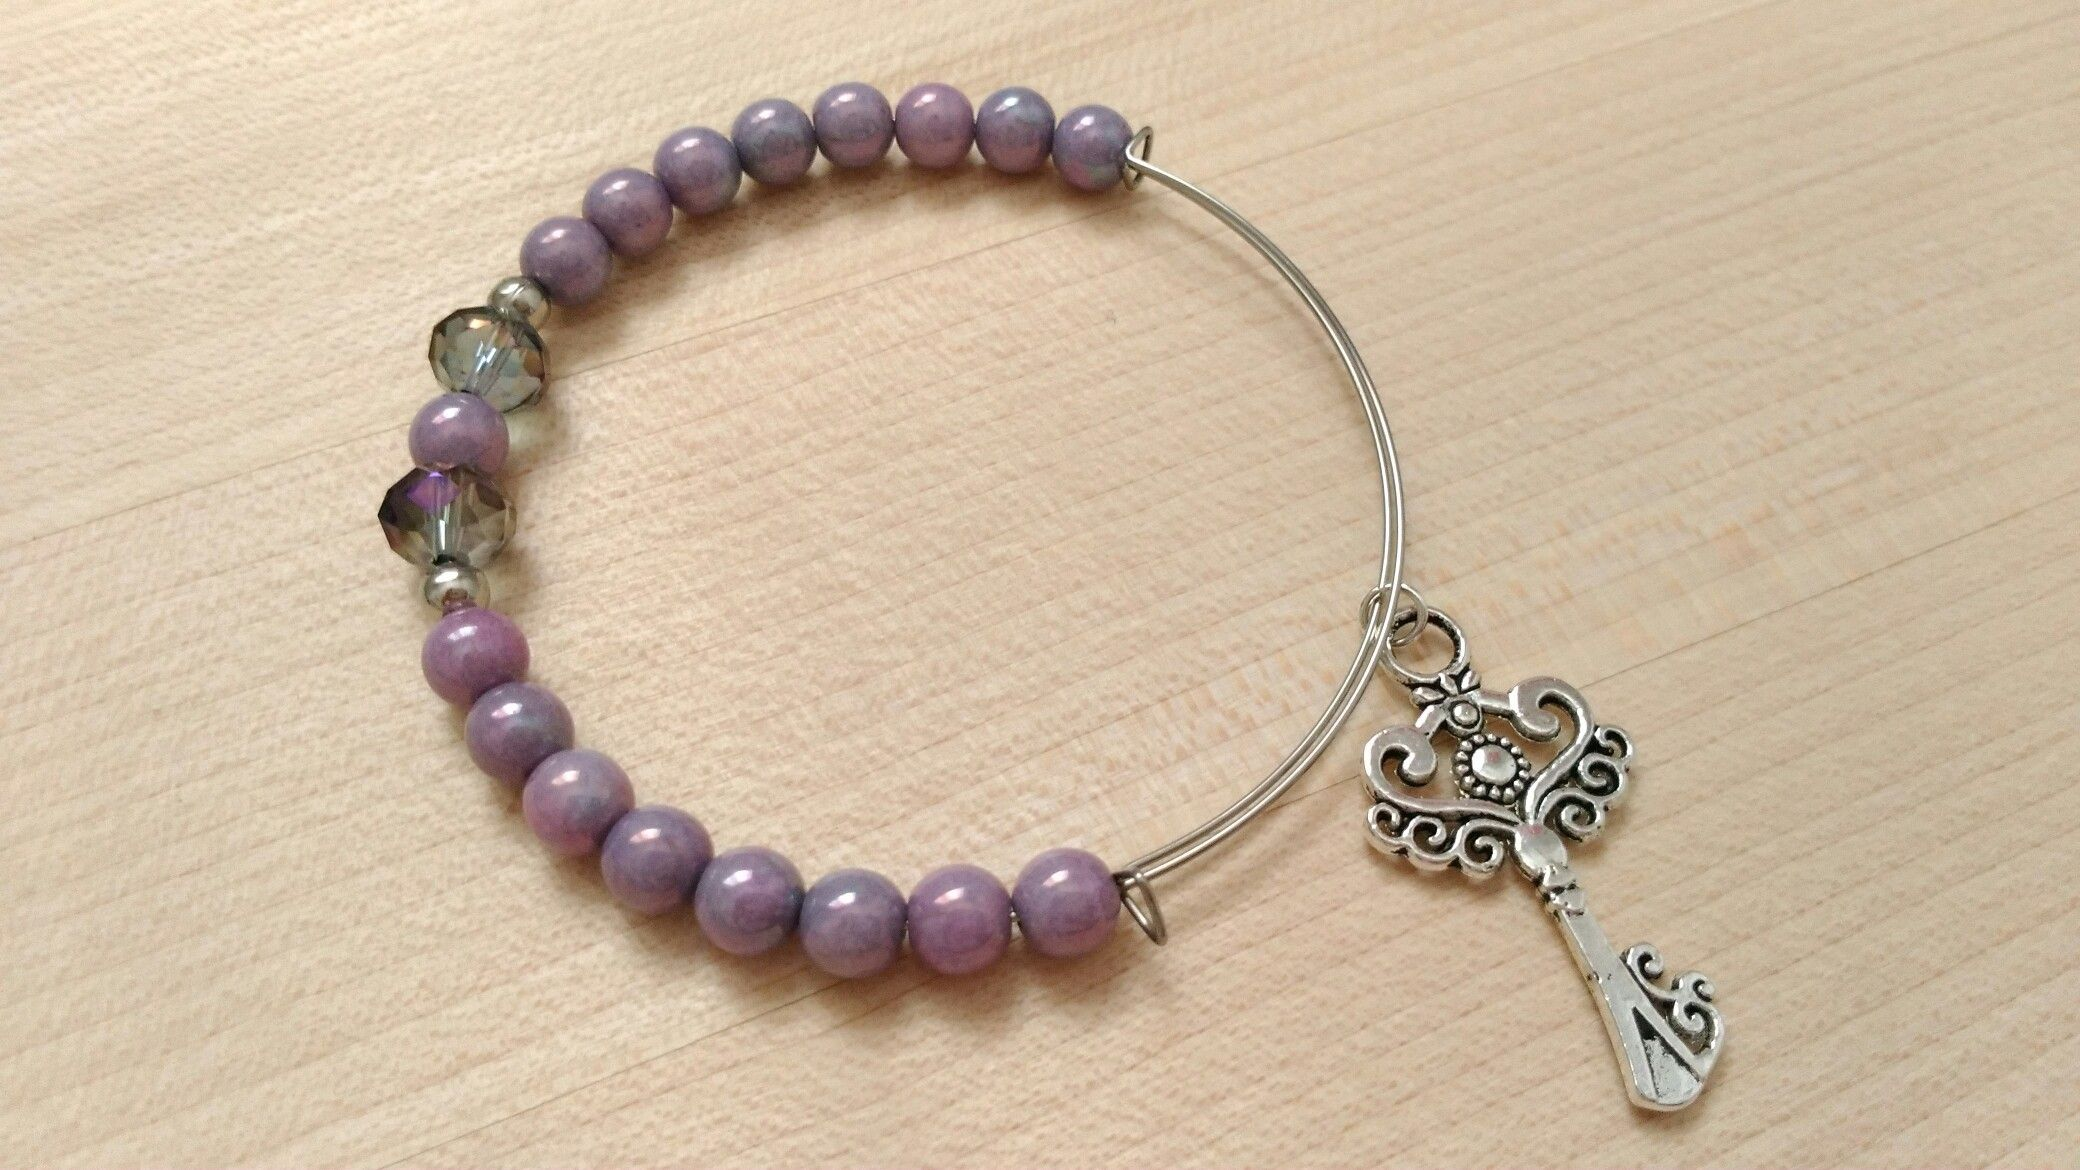 Miraculous Entities Collection: Intoxicating Love Bracelet Close up